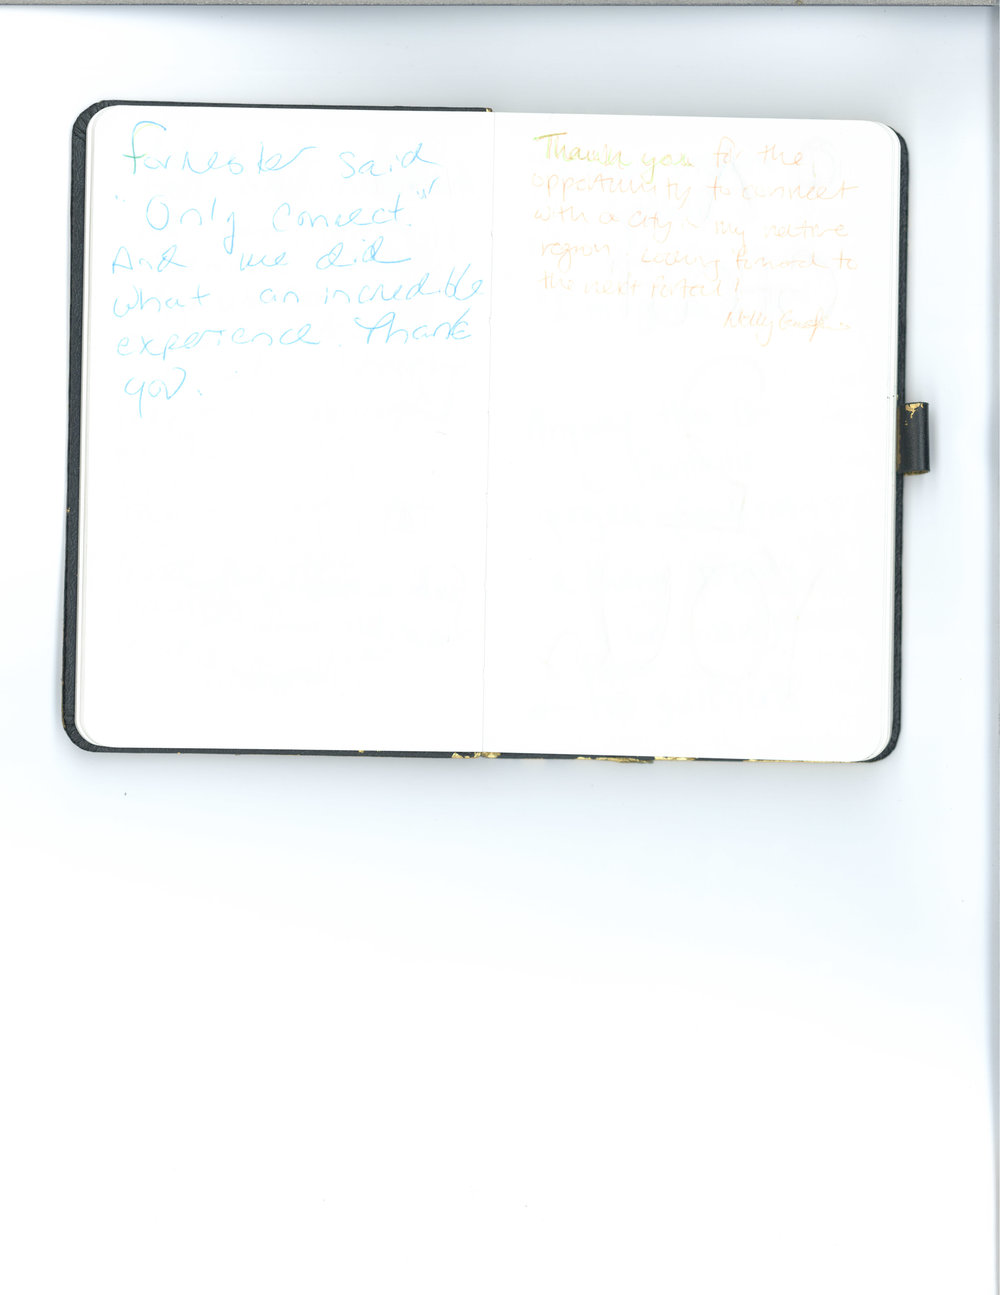 01 Note Book_Page_11.jpg